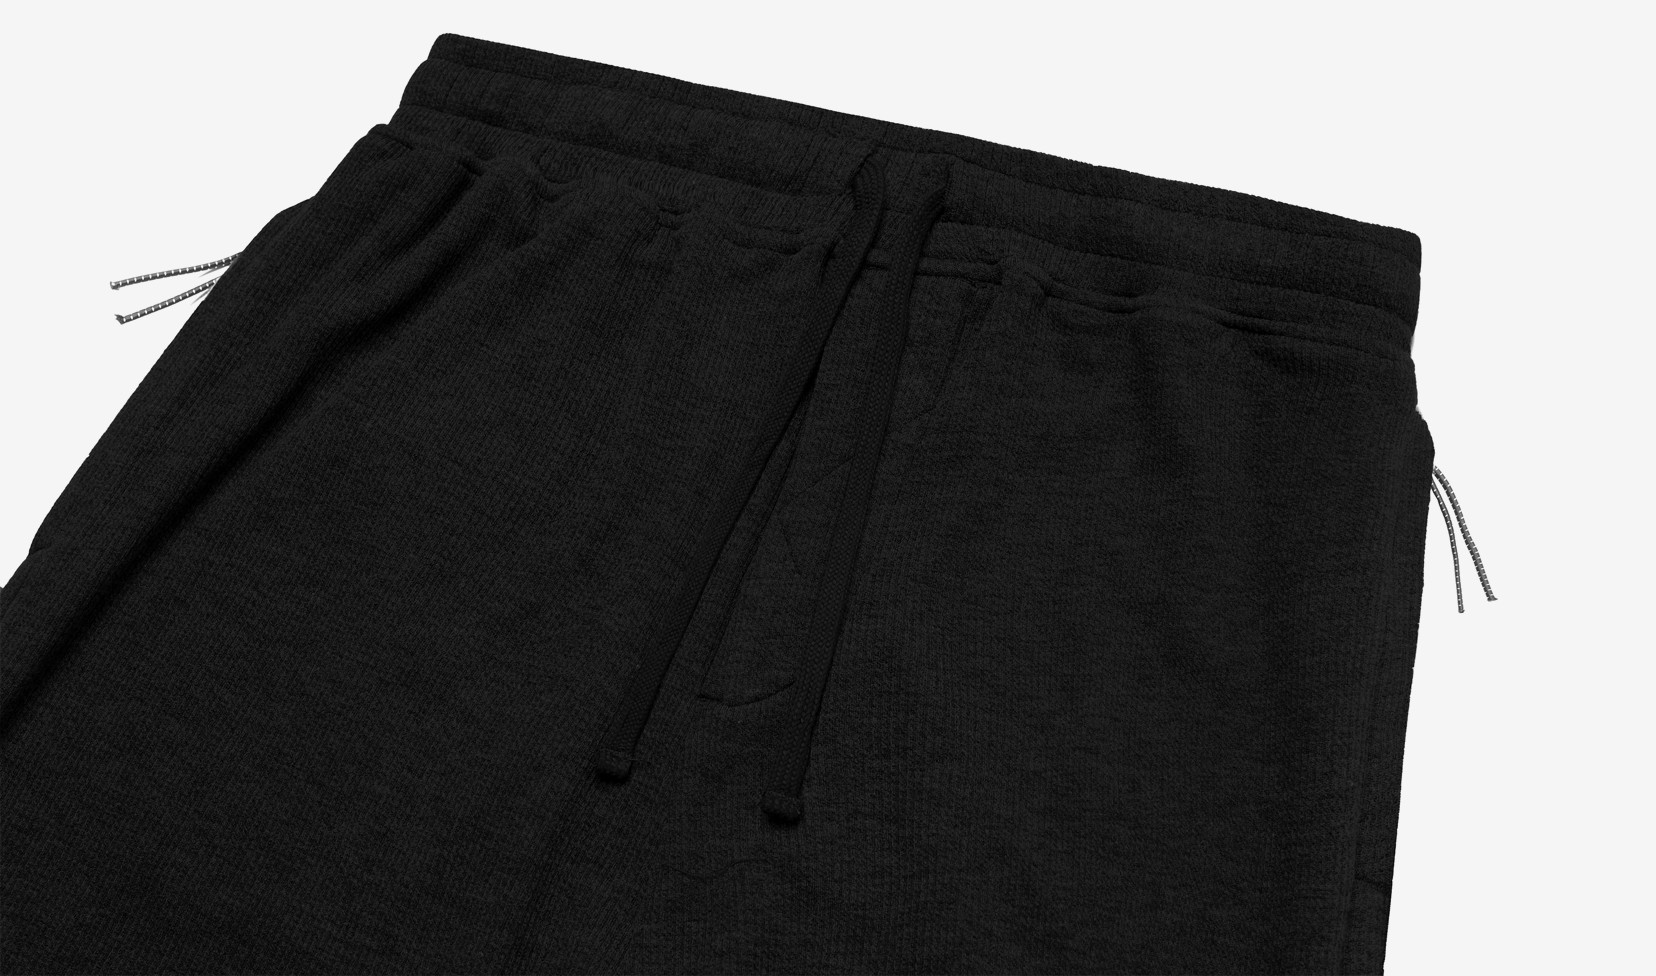 【Stampd' LA】☆17SS新作☆海外限定☆NOX BALL LEAGUE SHORT